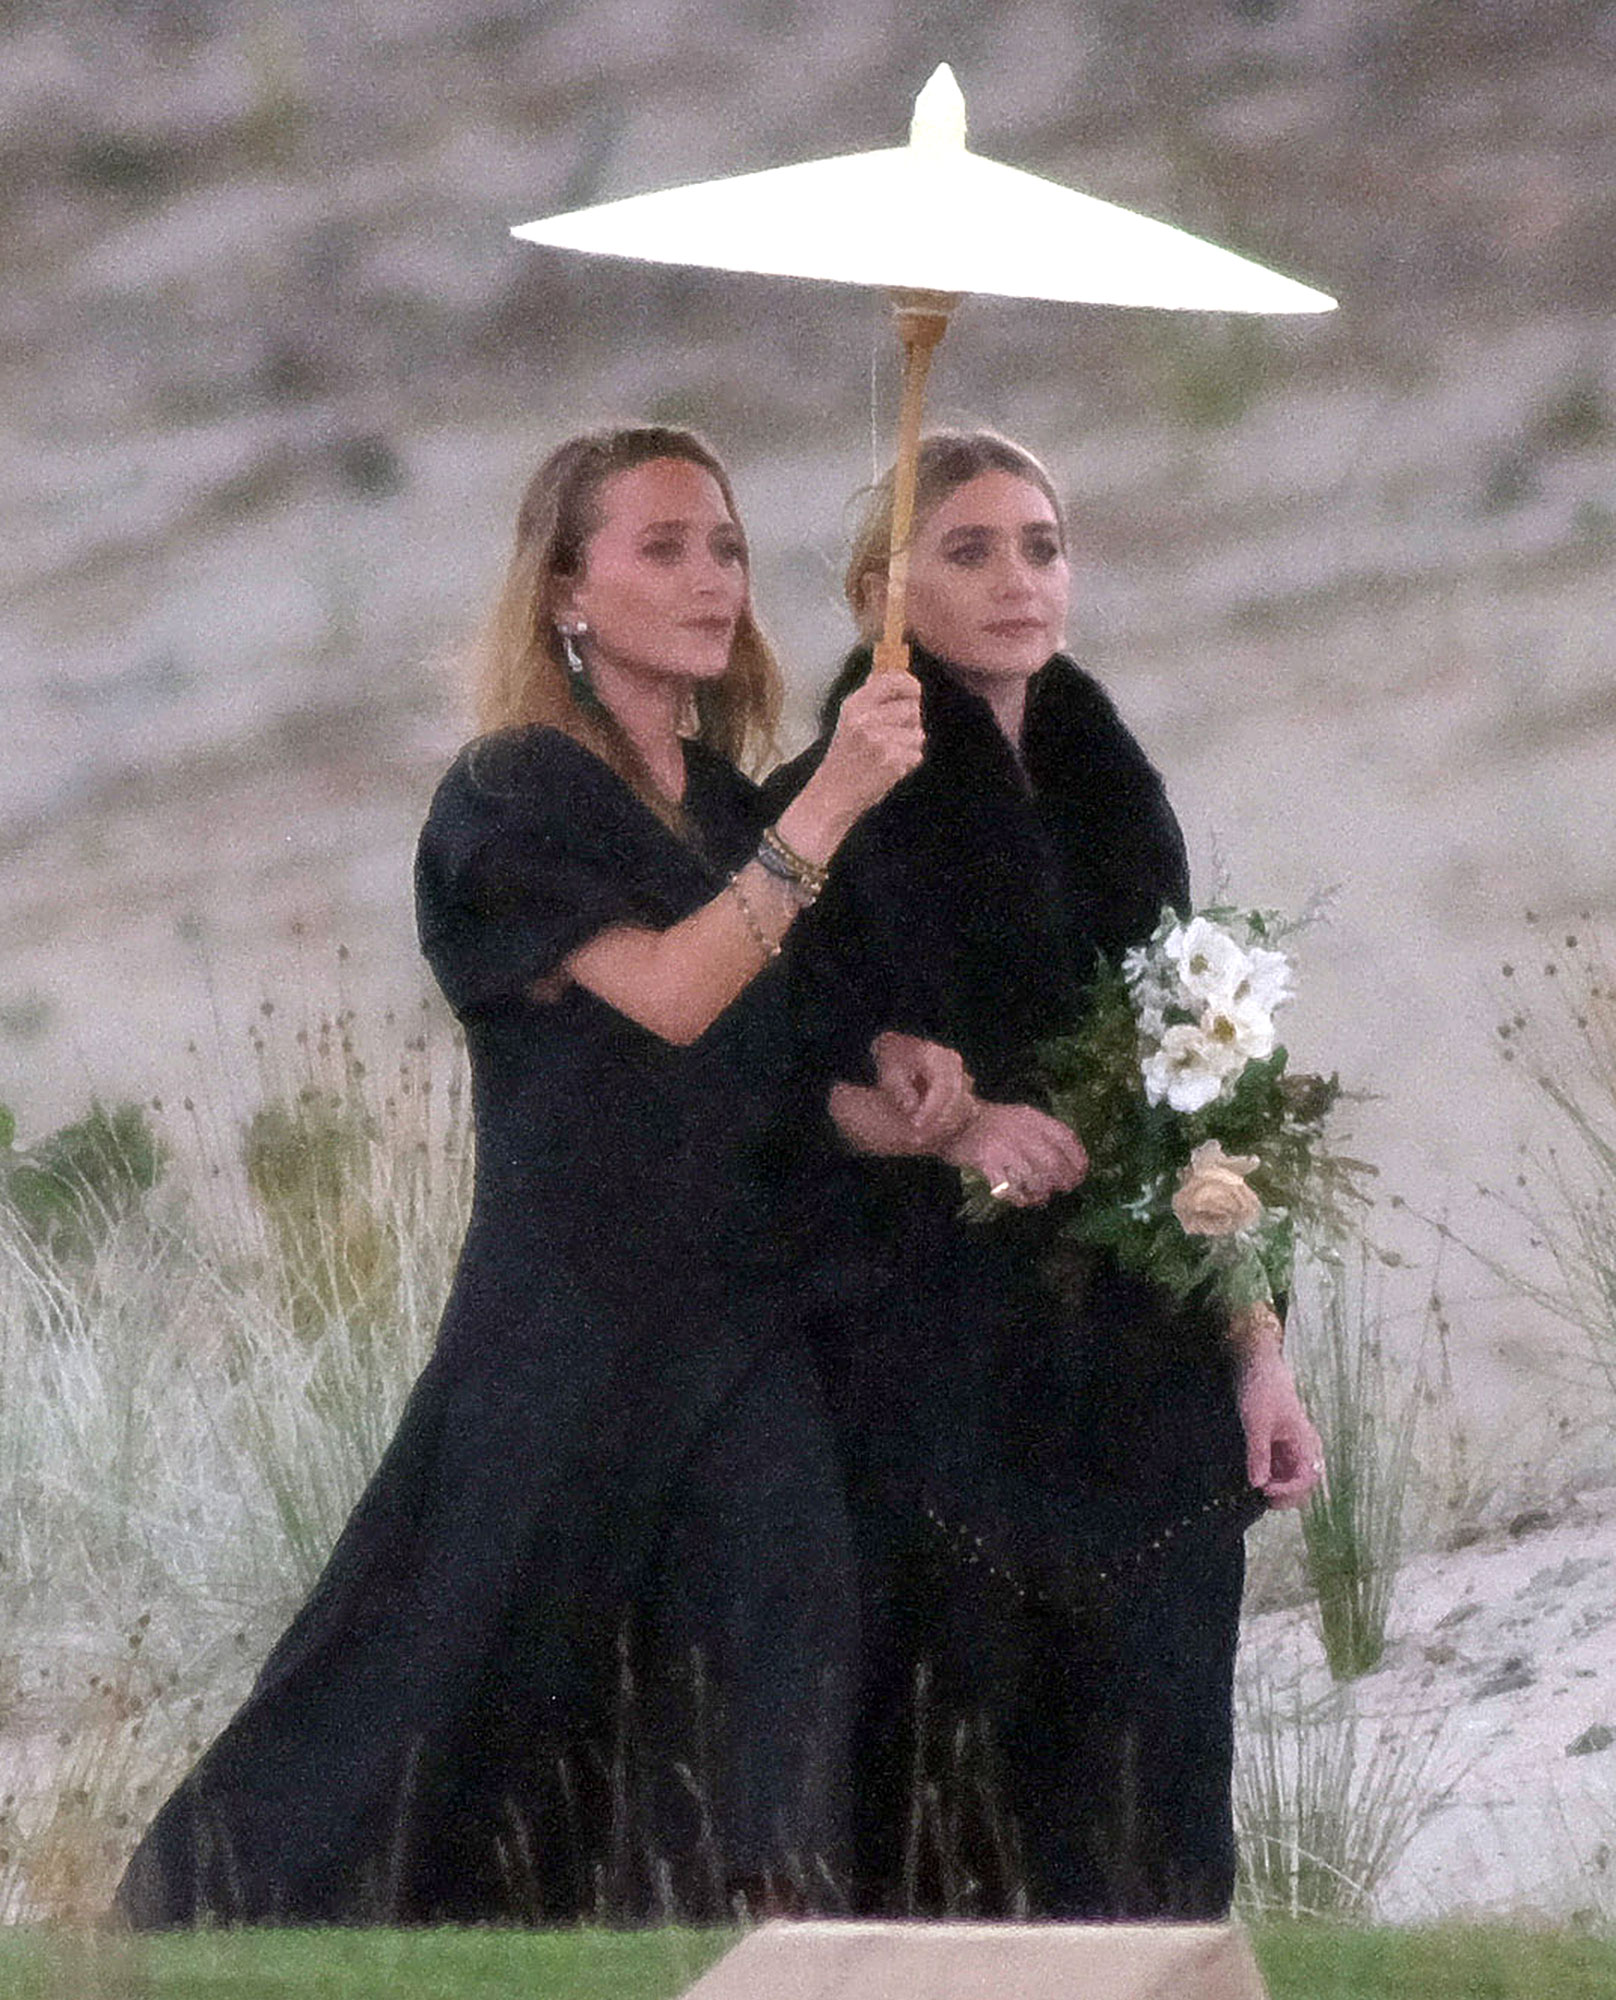 EXCLUSIVE: *NO WEB UNTIL 6AM 9 MARCH AEDT* Mary-Kate and Ashley Olsen are bridesmaids at a pal's wedding